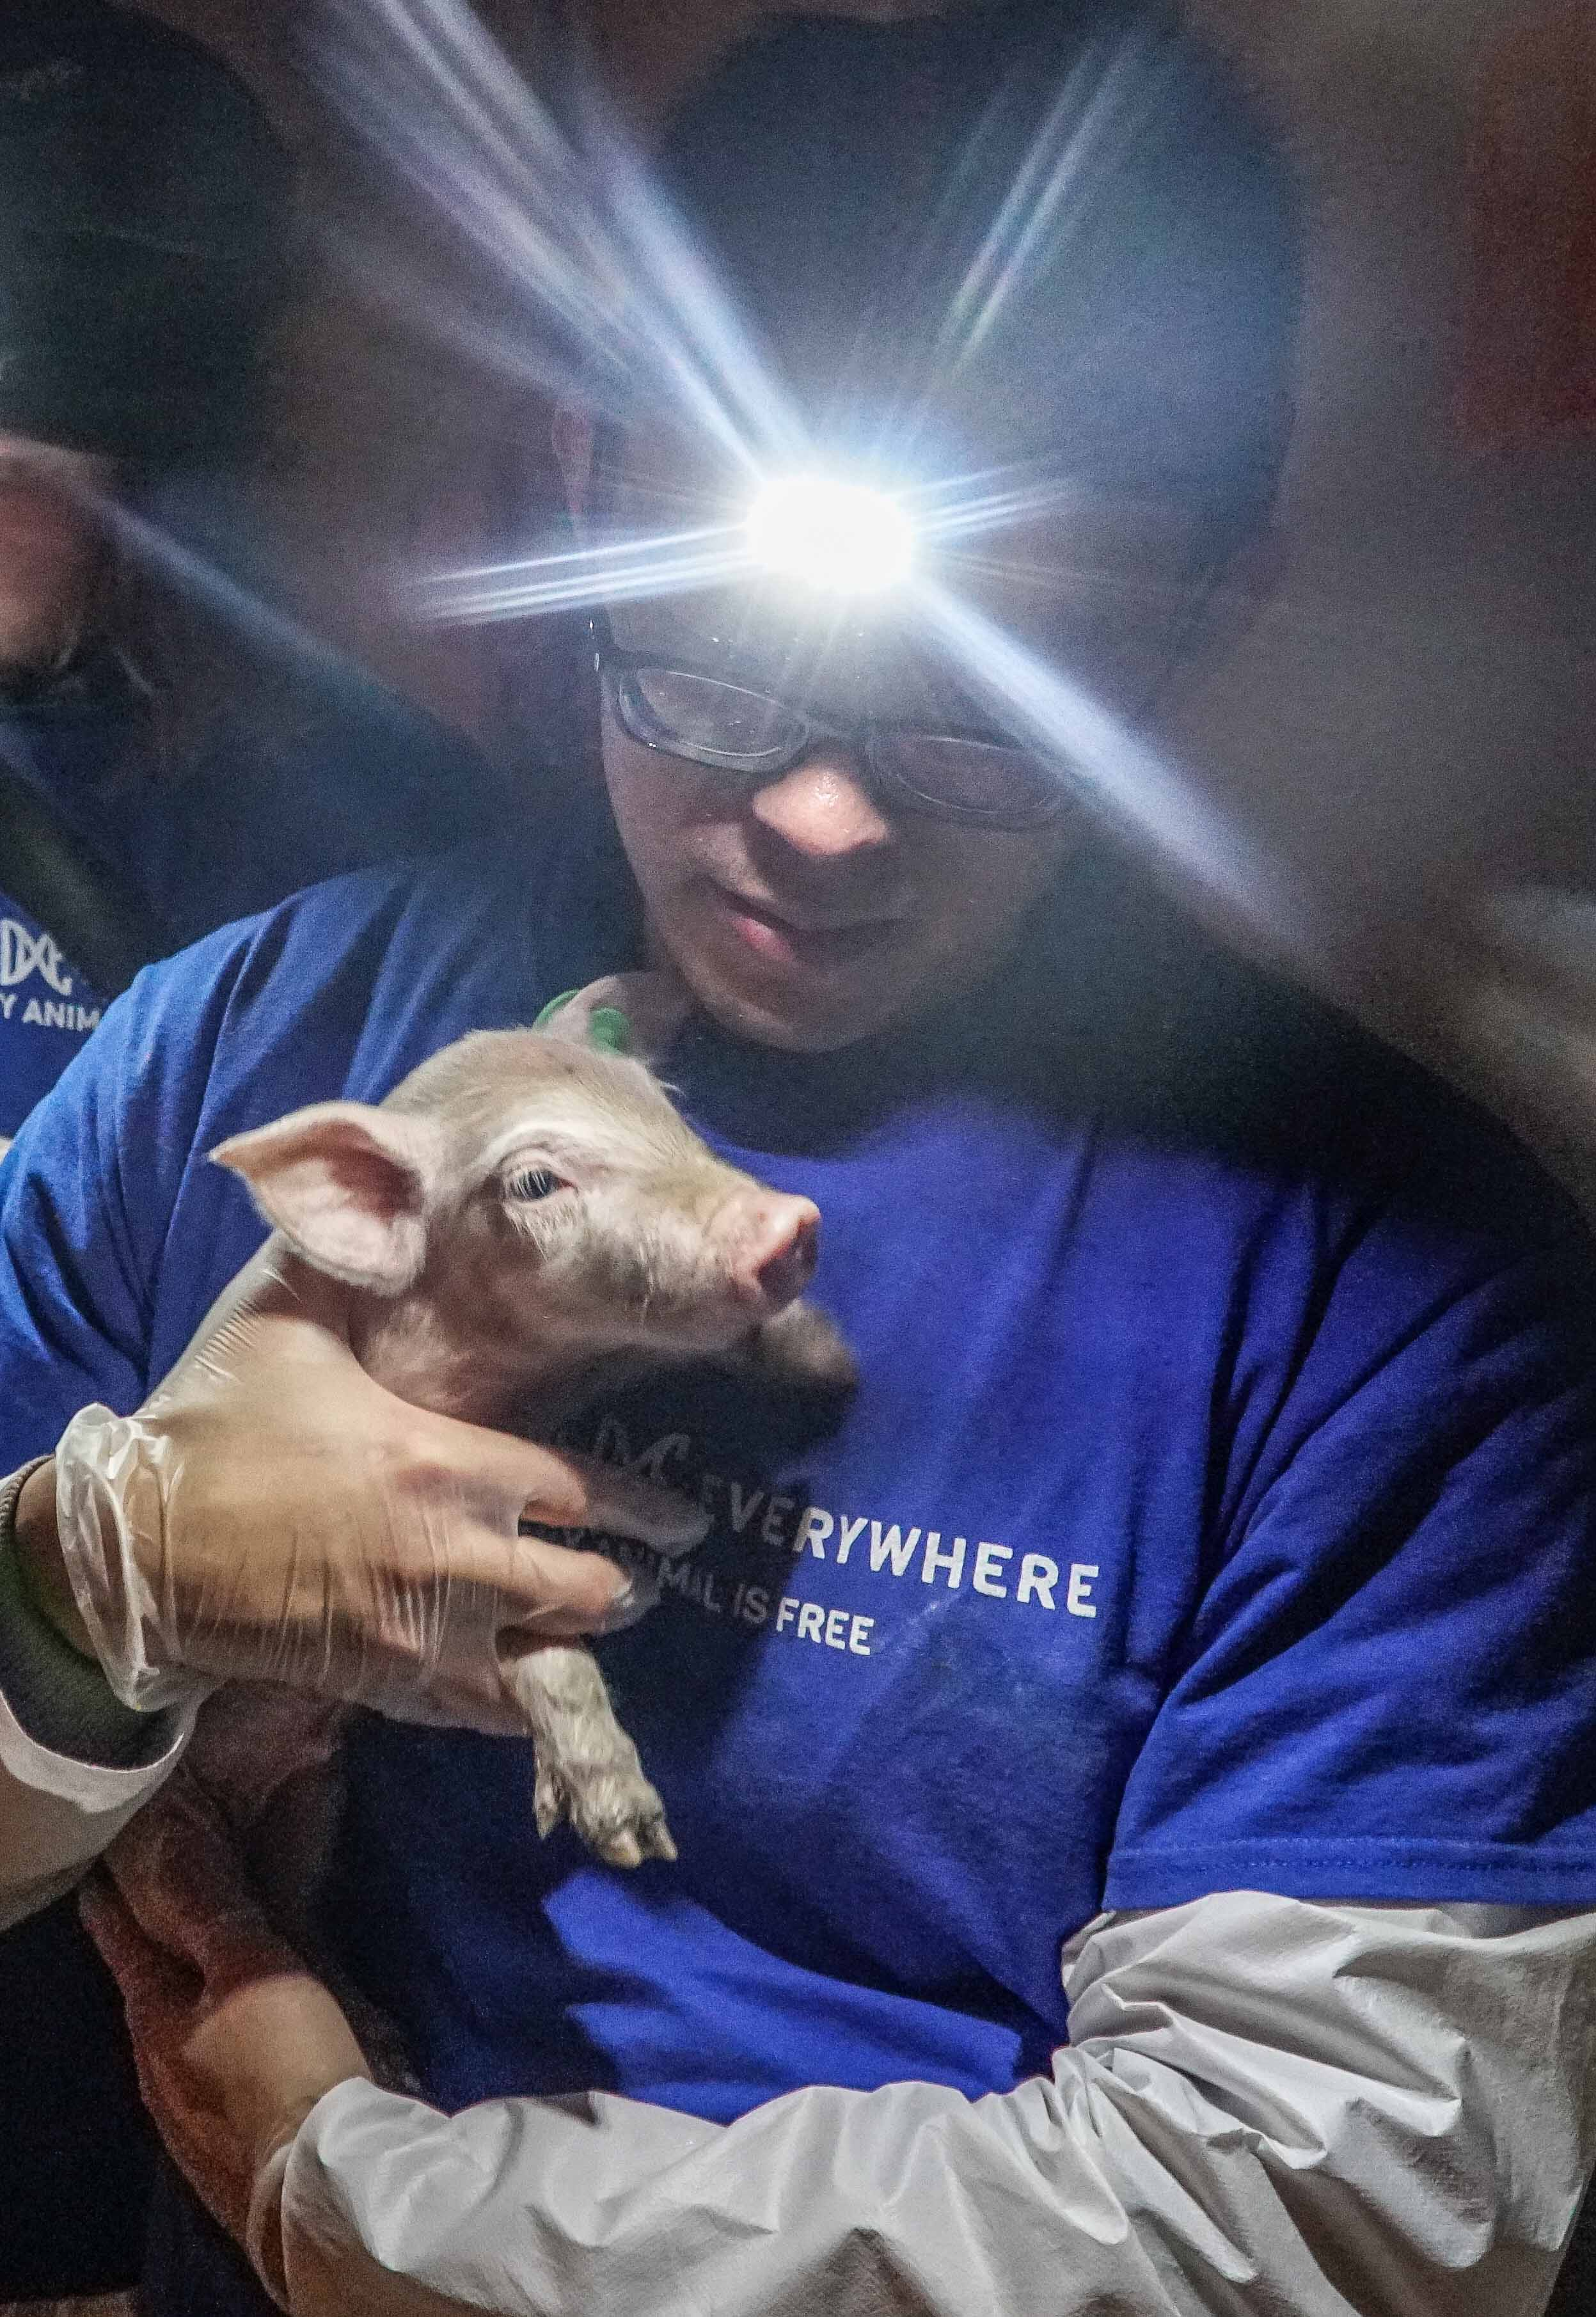 Wayne Hsiung, co-founder of DxE, brings carries a diseased piglet to safety.